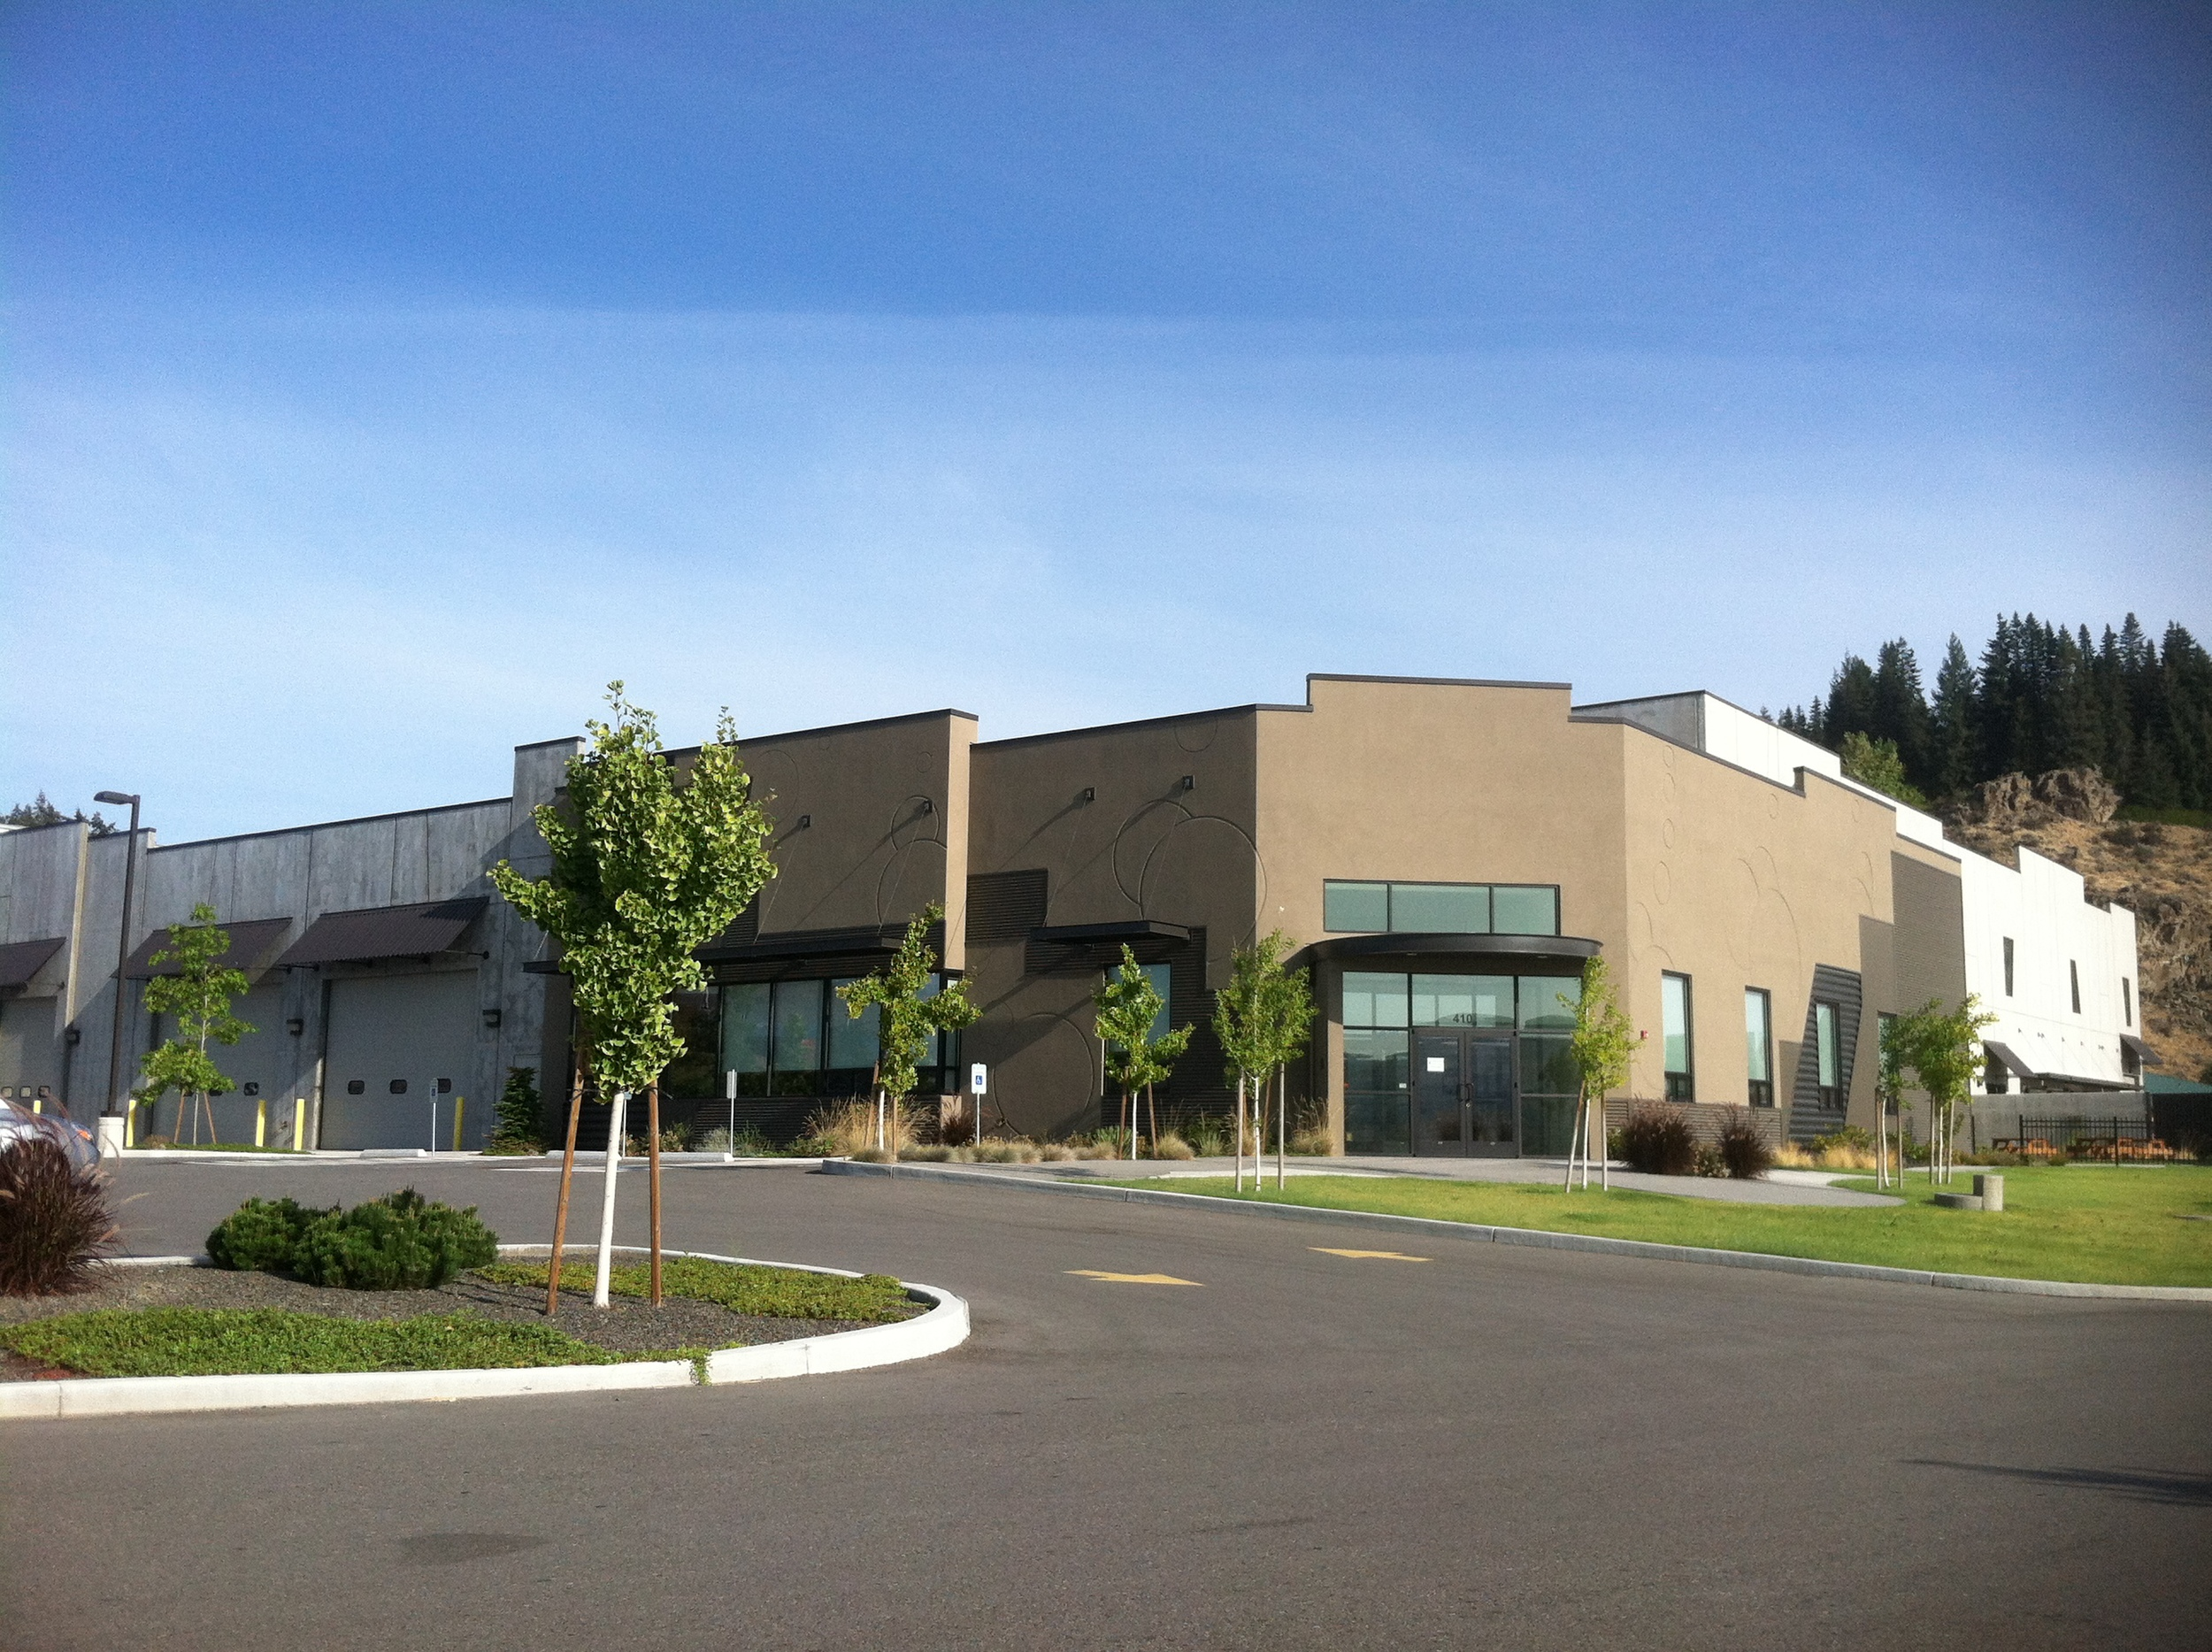 Weinstein Beverage's newest warehouse and distribution facility in Wenatchee Washington. Host to the beverage delivery company, Eastern Cascade Distributing, and Weinstein Wholesale solutions.